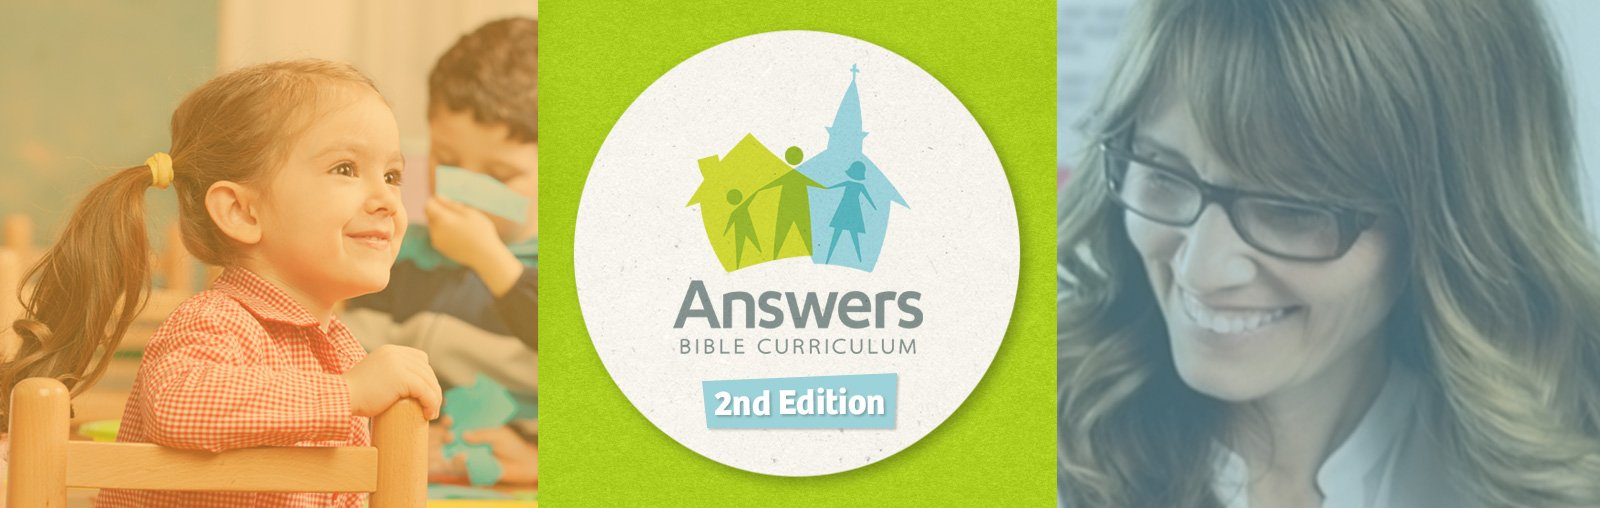 Answers Bible Curriculum 2nd Edition Now Available